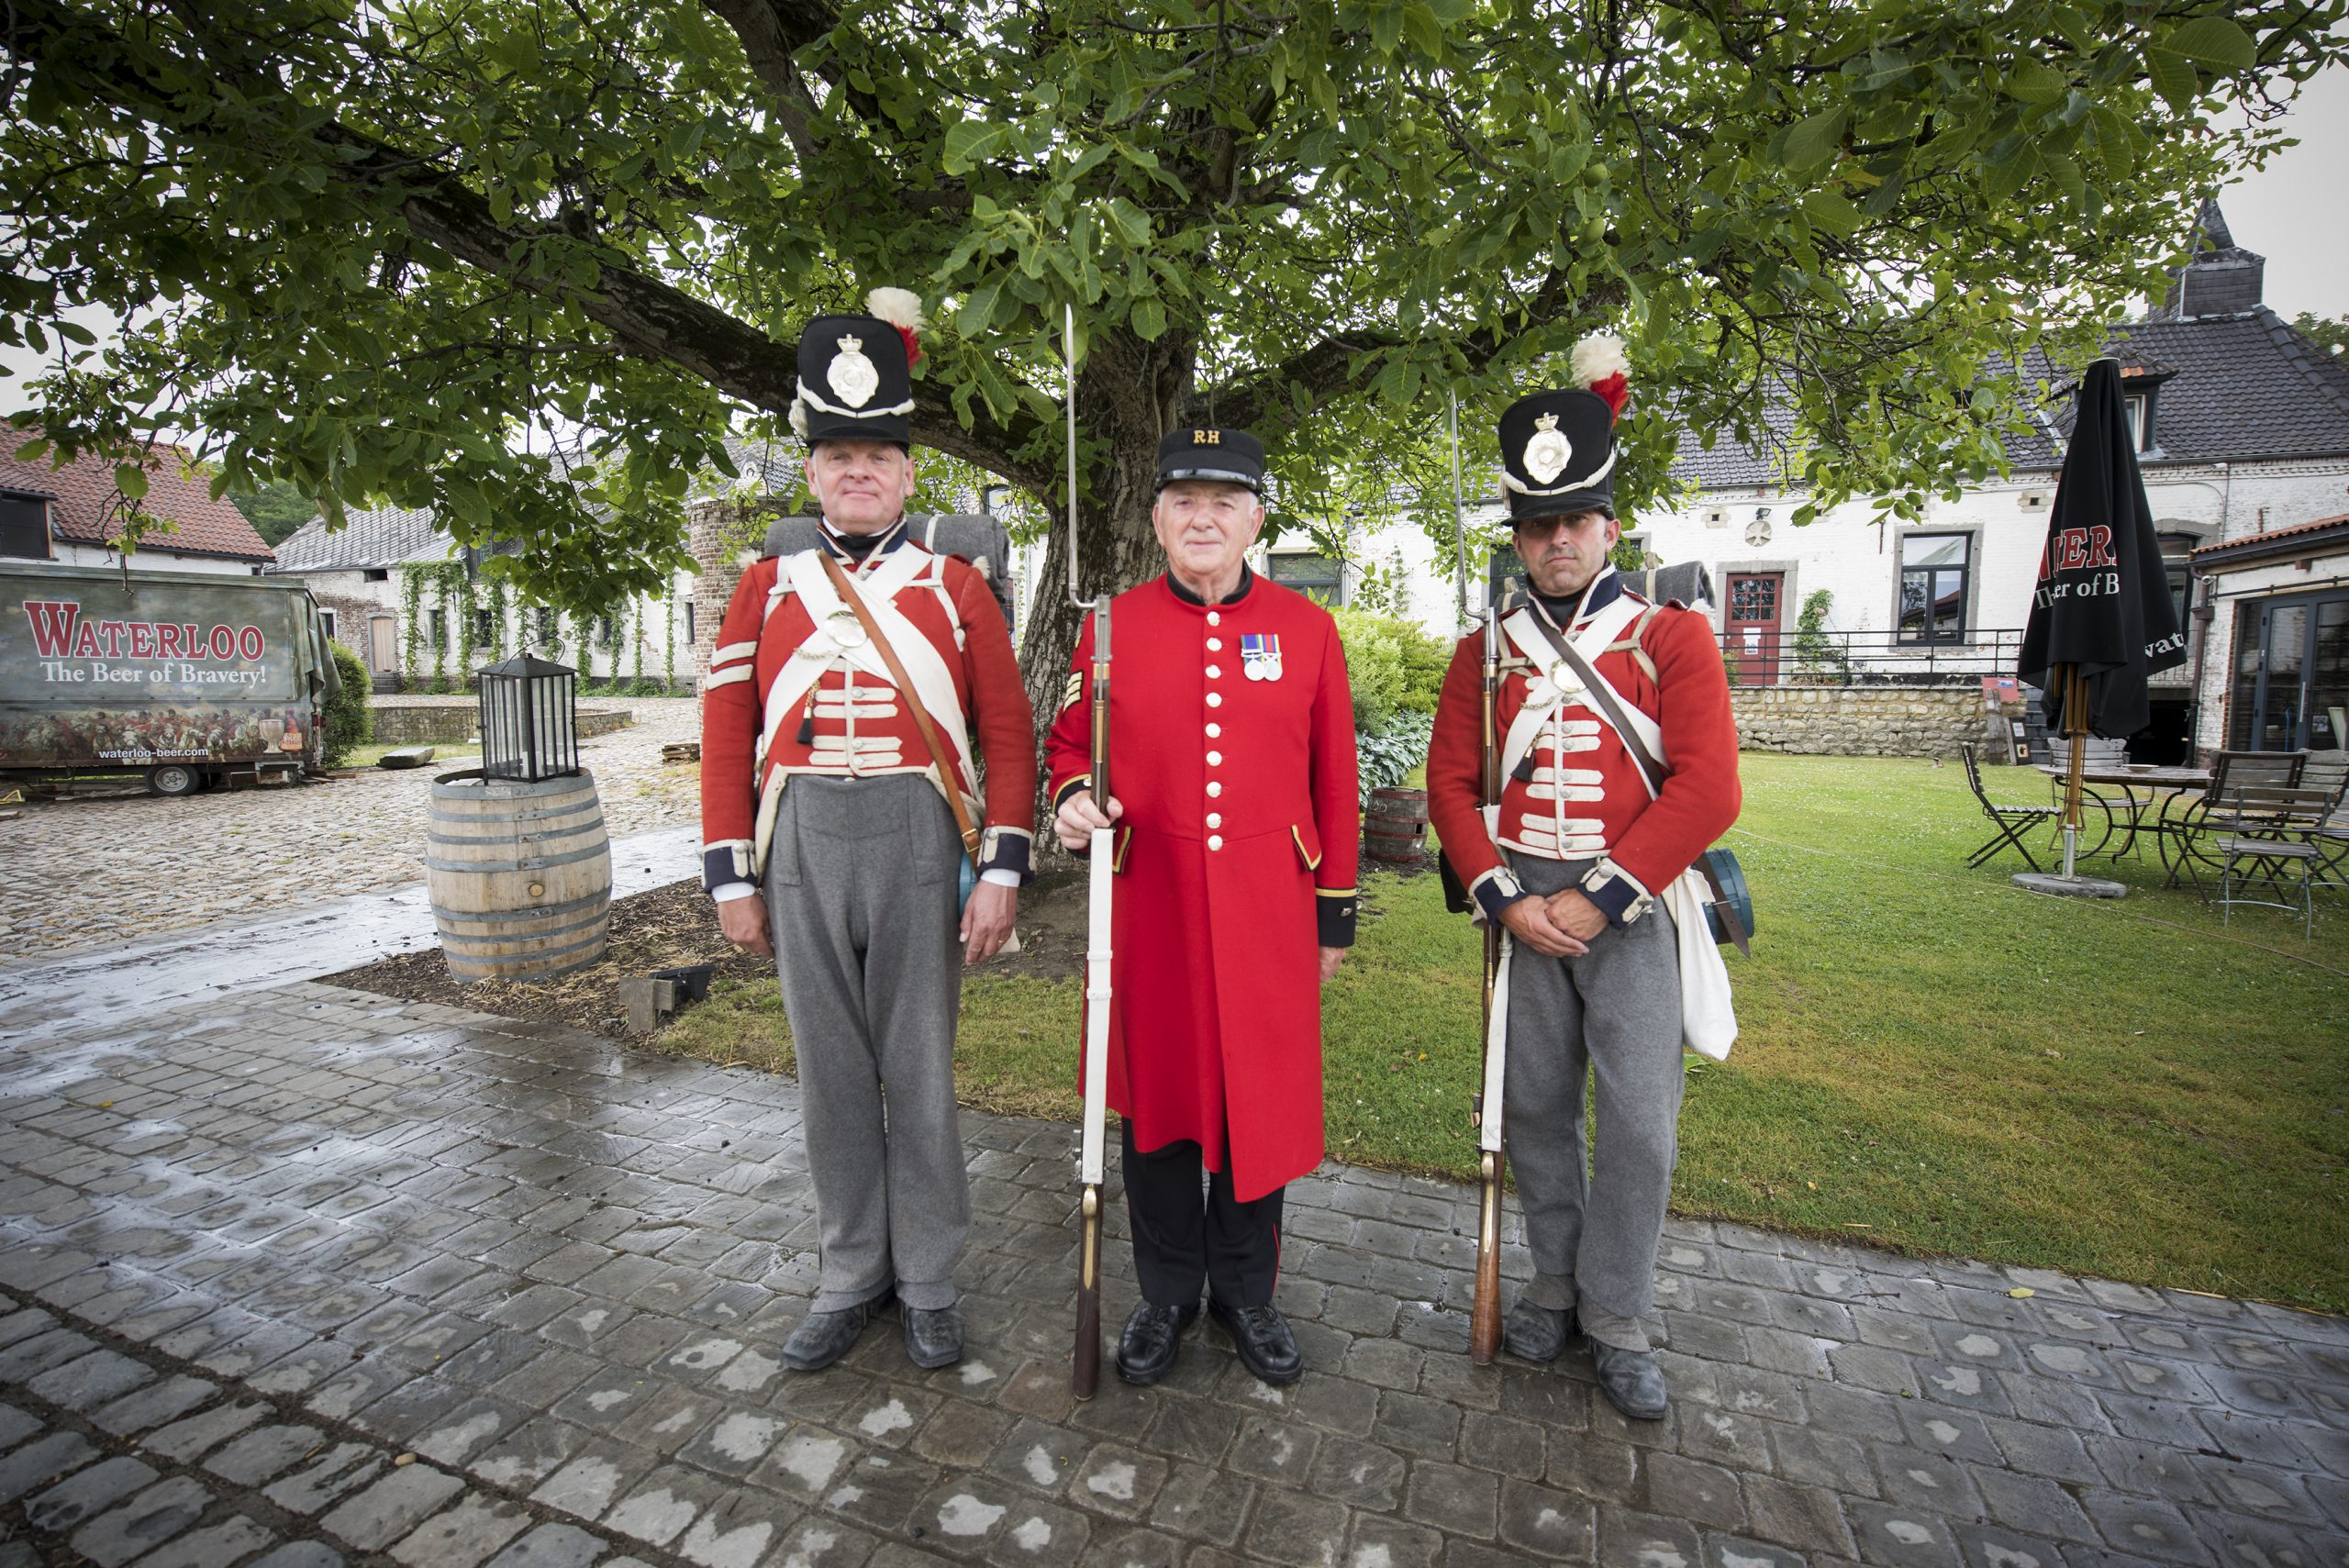 Two Coldstream Guards reenactors in red uniform stand with a Chelsea Pensioner in his red uniform in front of a tree